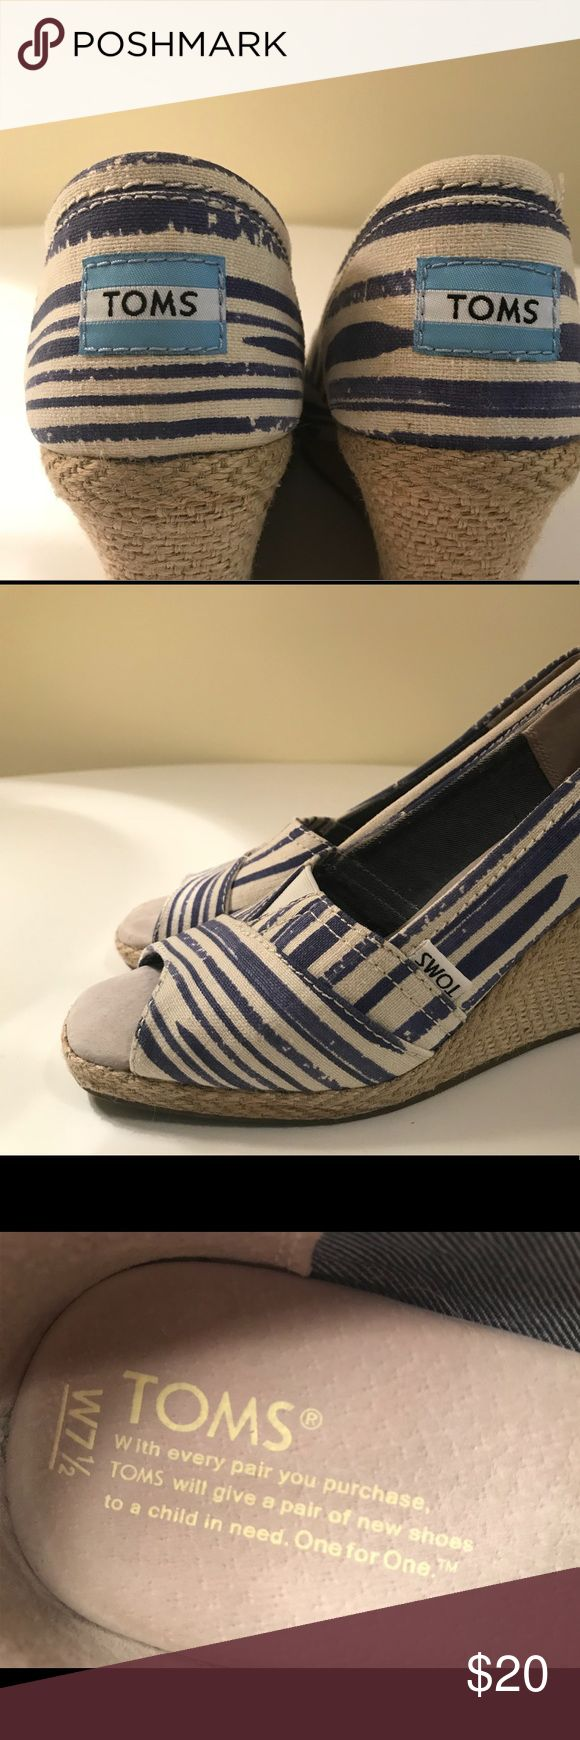 Toms ikat denim and white wedges. Size 7.5. Great summer wedge. Ink blue and white ikat pattern. Cushion sole. Worn twice. Toms Shoes Wedges